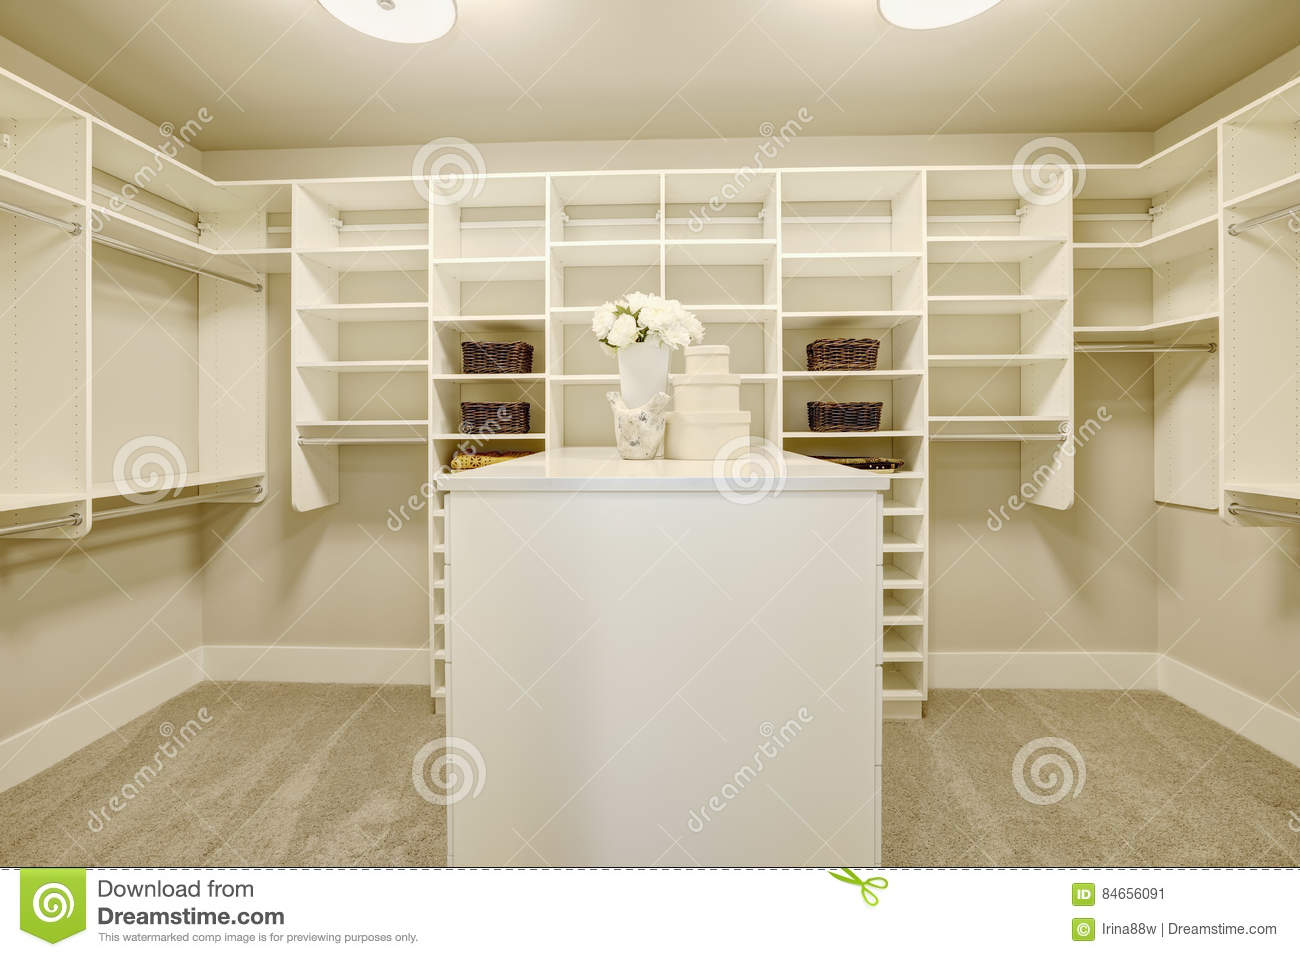 with elfa full for interior open home system pantry ideas systems reach closets x shelftrack organizer trendy or hanging size design and shoe of furniture drawers walk plus clothes closet store online container closetmaid lowes elegant wardrobe mounted wall storage white drawer in custom